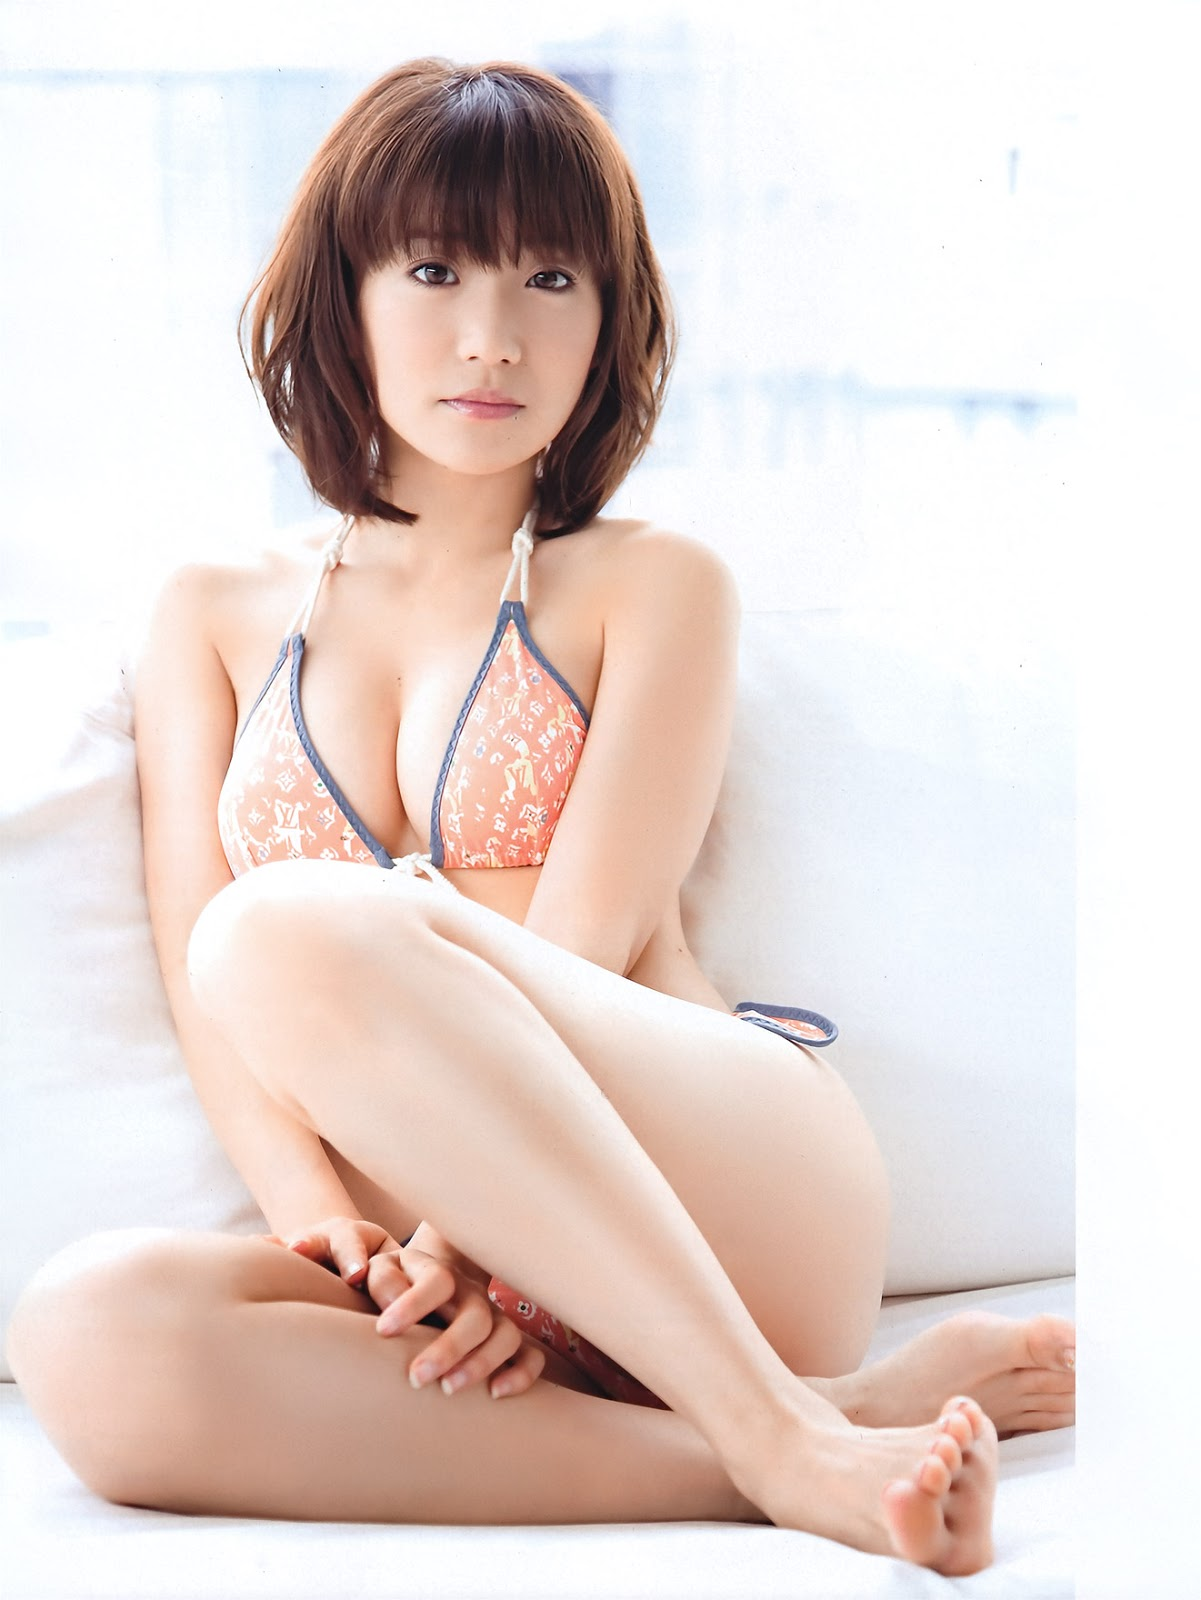 yuko ooshima nude fake An error occurred.